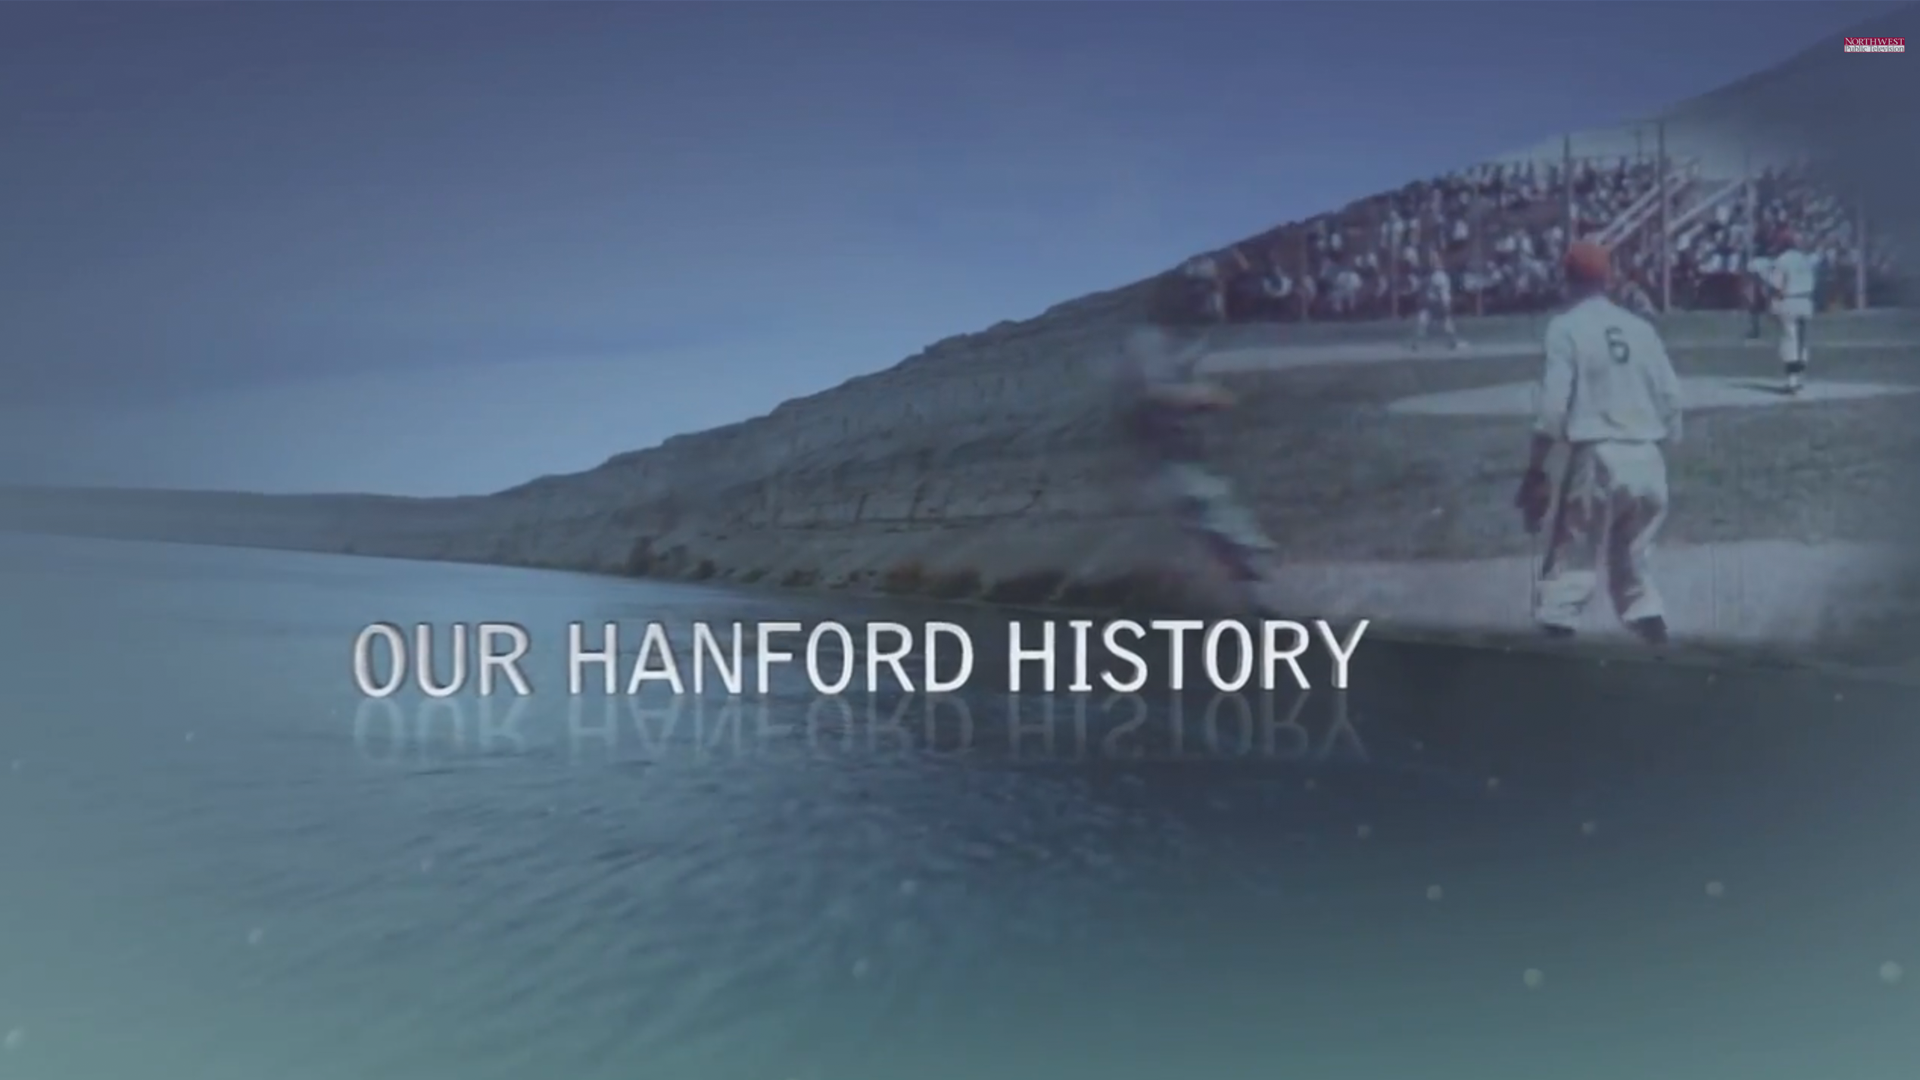 Our Hanford History